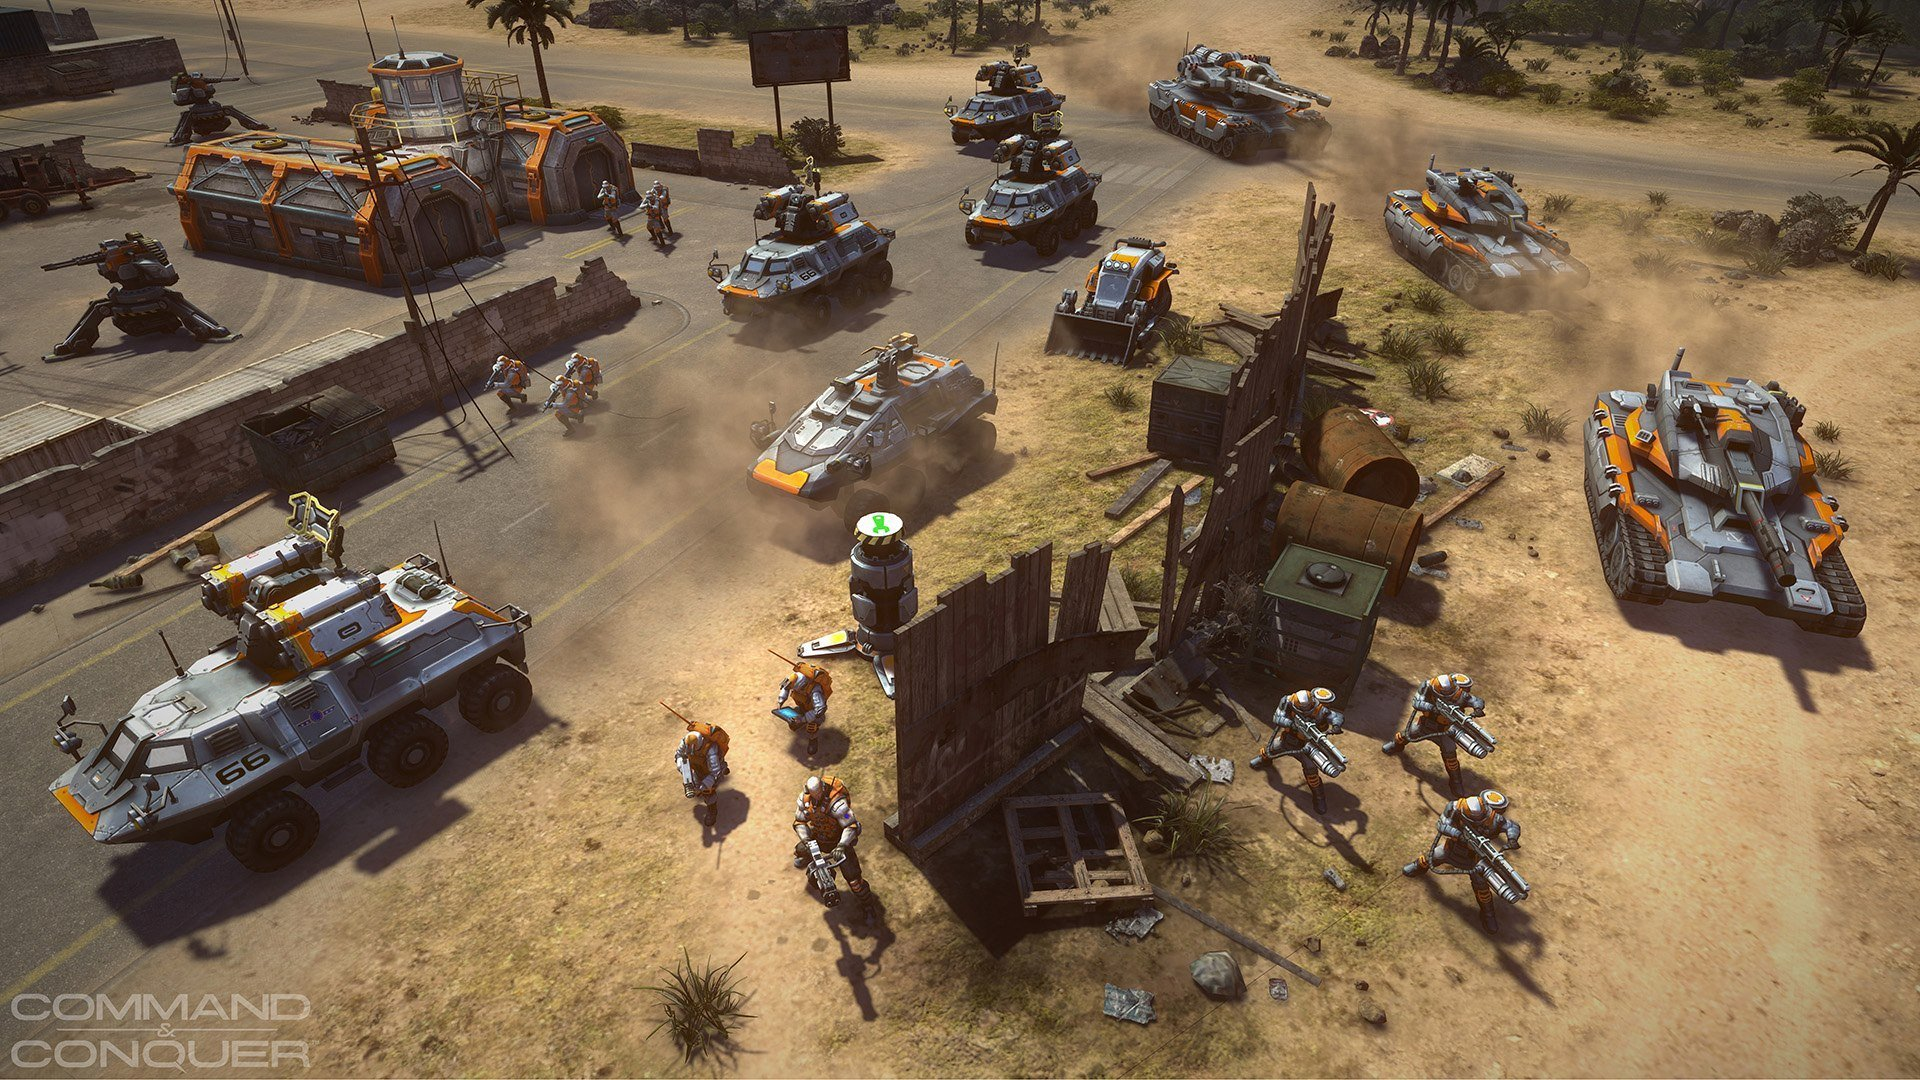 Command and conquer 2013 generals 2 leaked gameplay download.